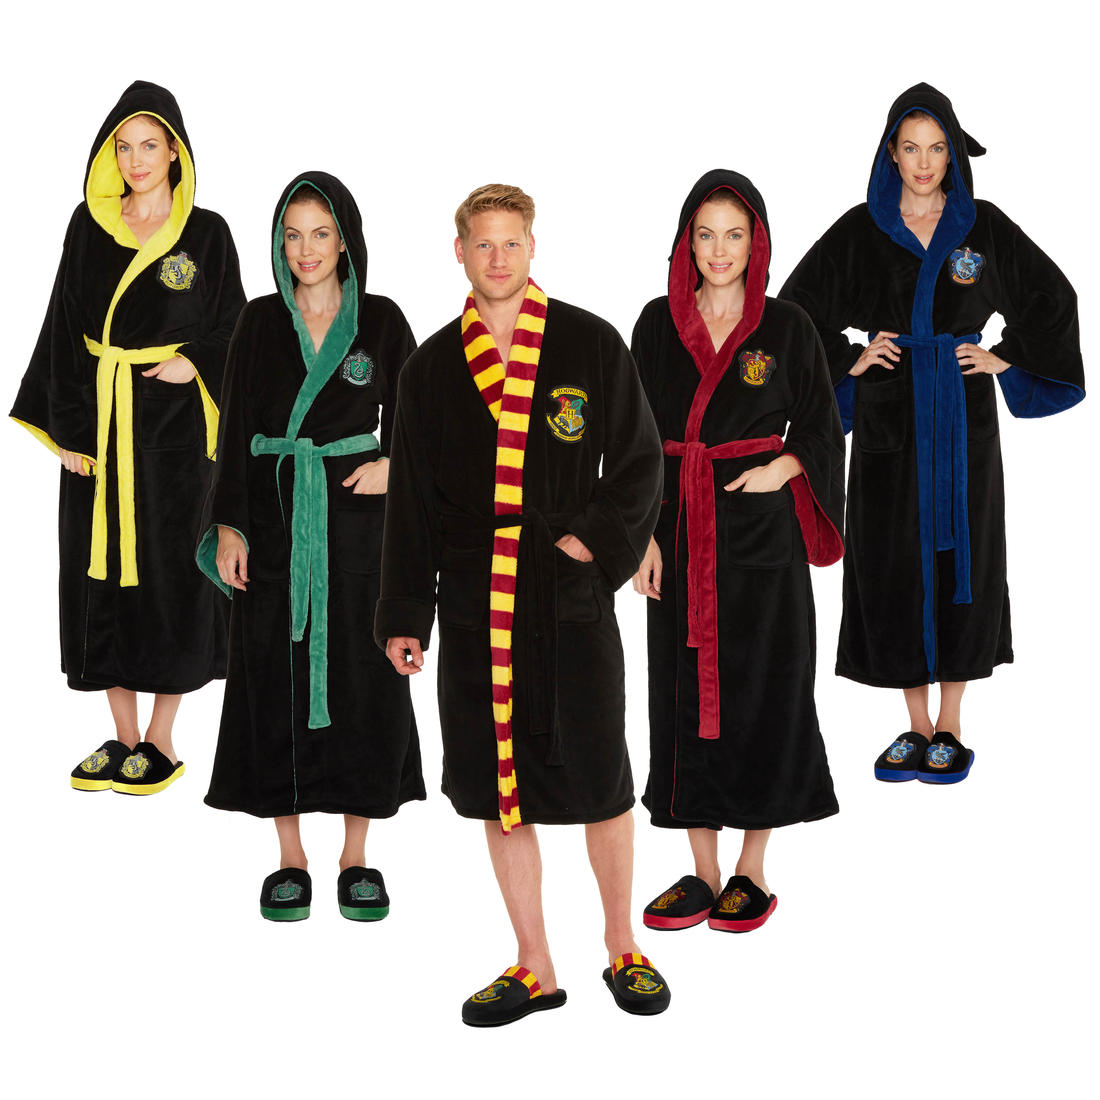 Harry Potter Hogwarts Bathrobes Getdigital This robe has cloth patches of various shapes and colors covering it. harry potter hogwarts bathrobes